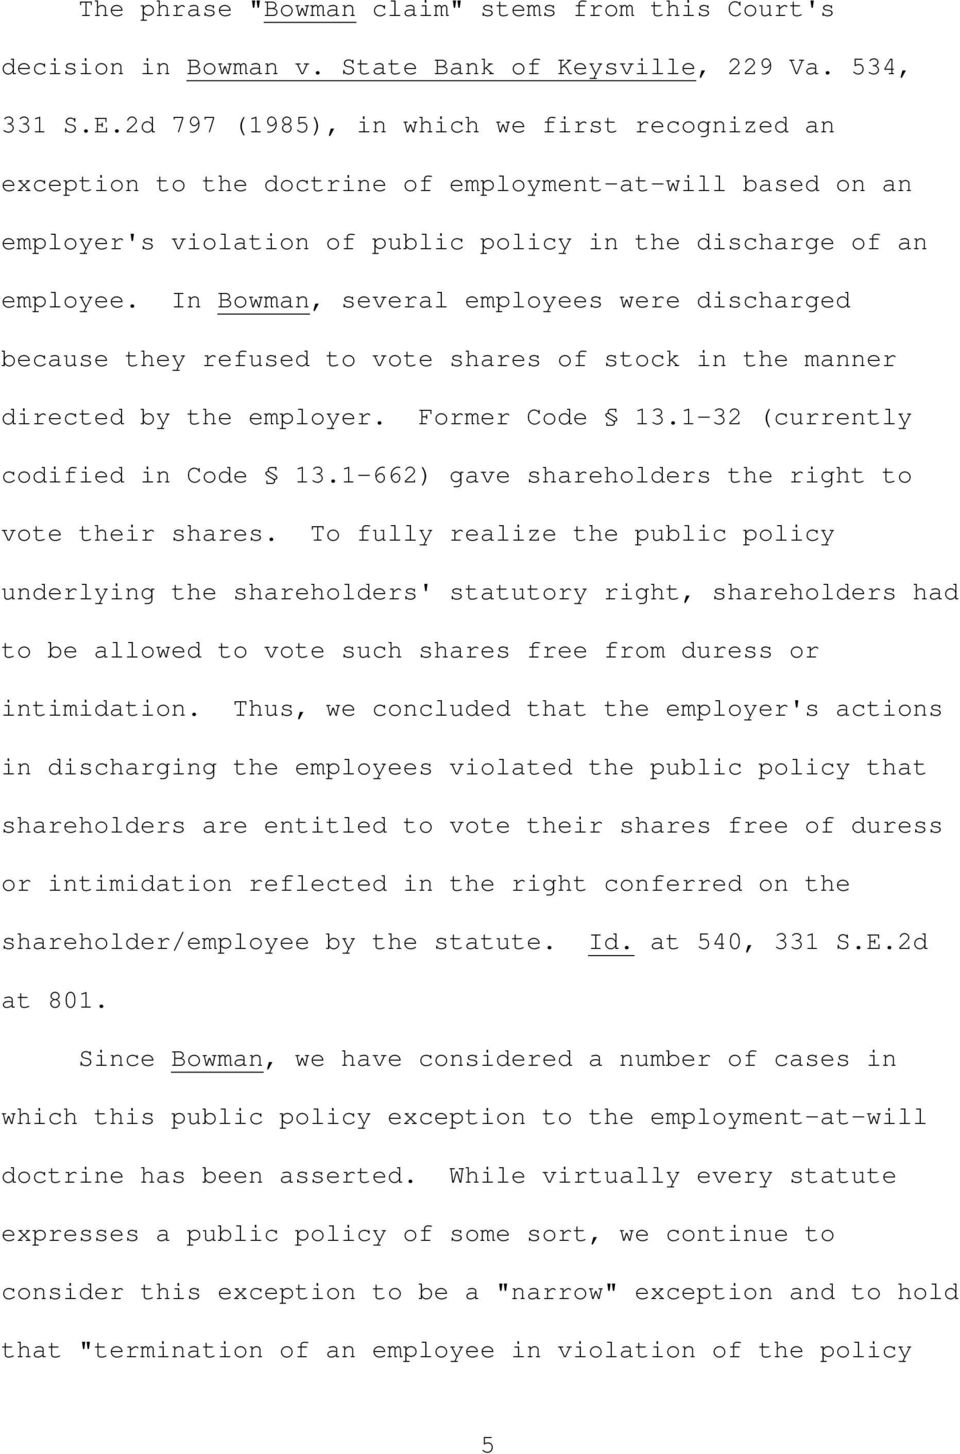 In Bowman, several employees were discharged because they refused to vote shares of stock in the manner directed by the employer. Former Code 13.1-32 (currently codified in Code 13.